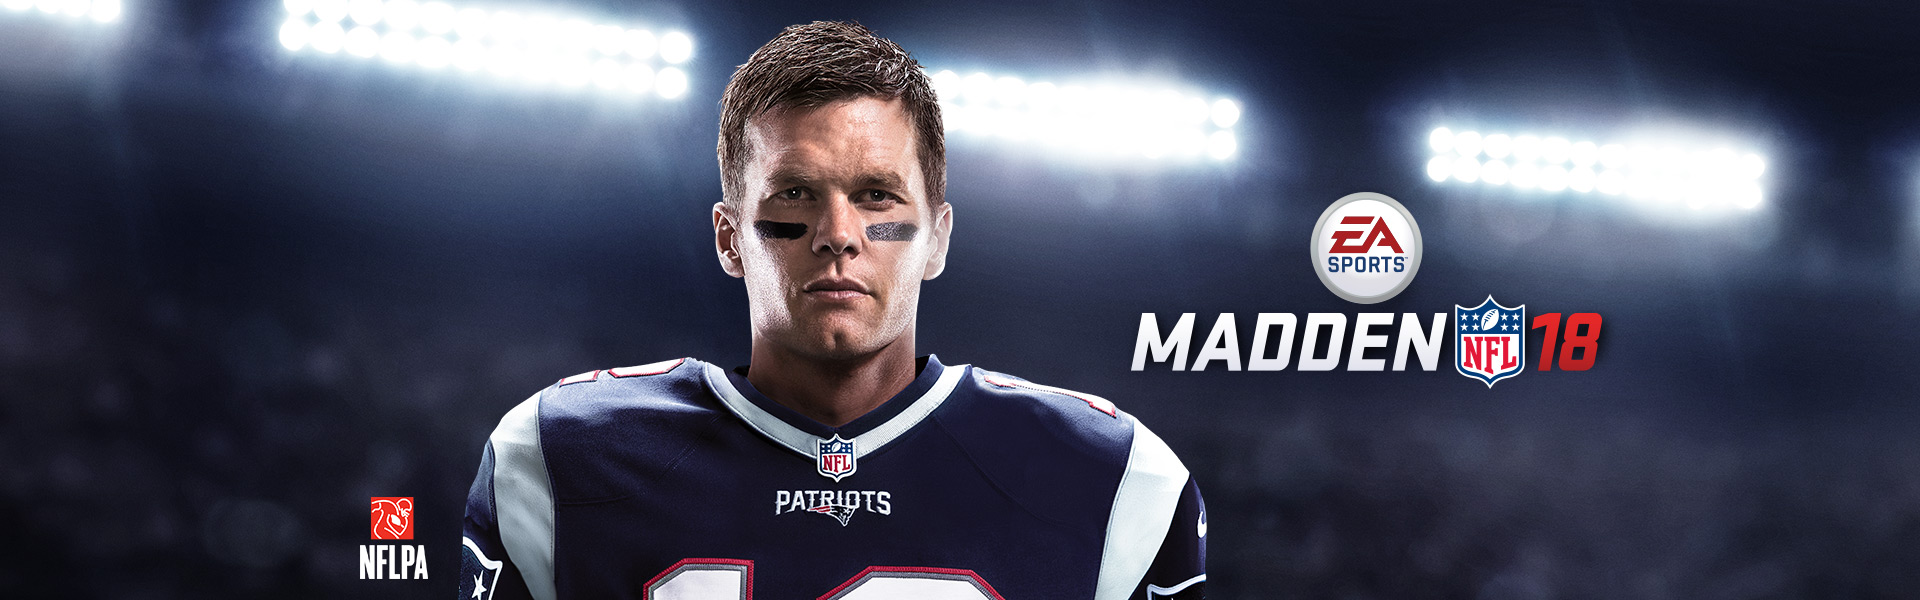 Tom Brady com o uniforme dos Patriots